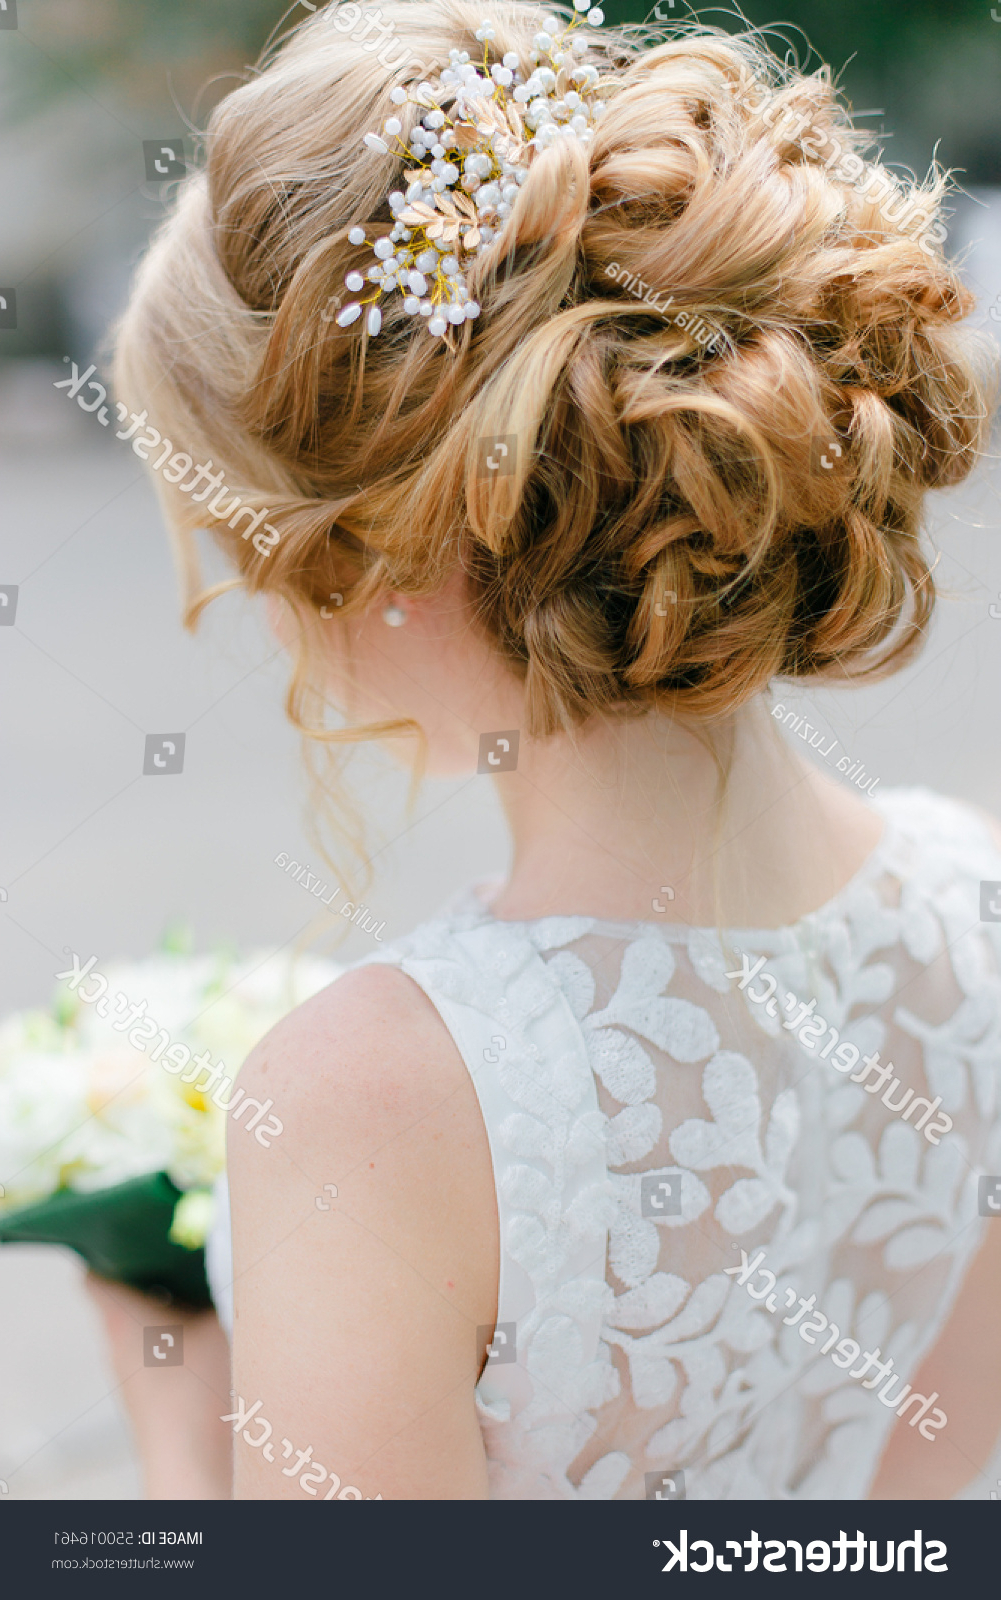 Tender Wedding Hairstyle Long Blond Curly Stock Photo (Edit Now Throughout Newest Tender Bridal Hairstyles With A Veil (View 15 of 20)